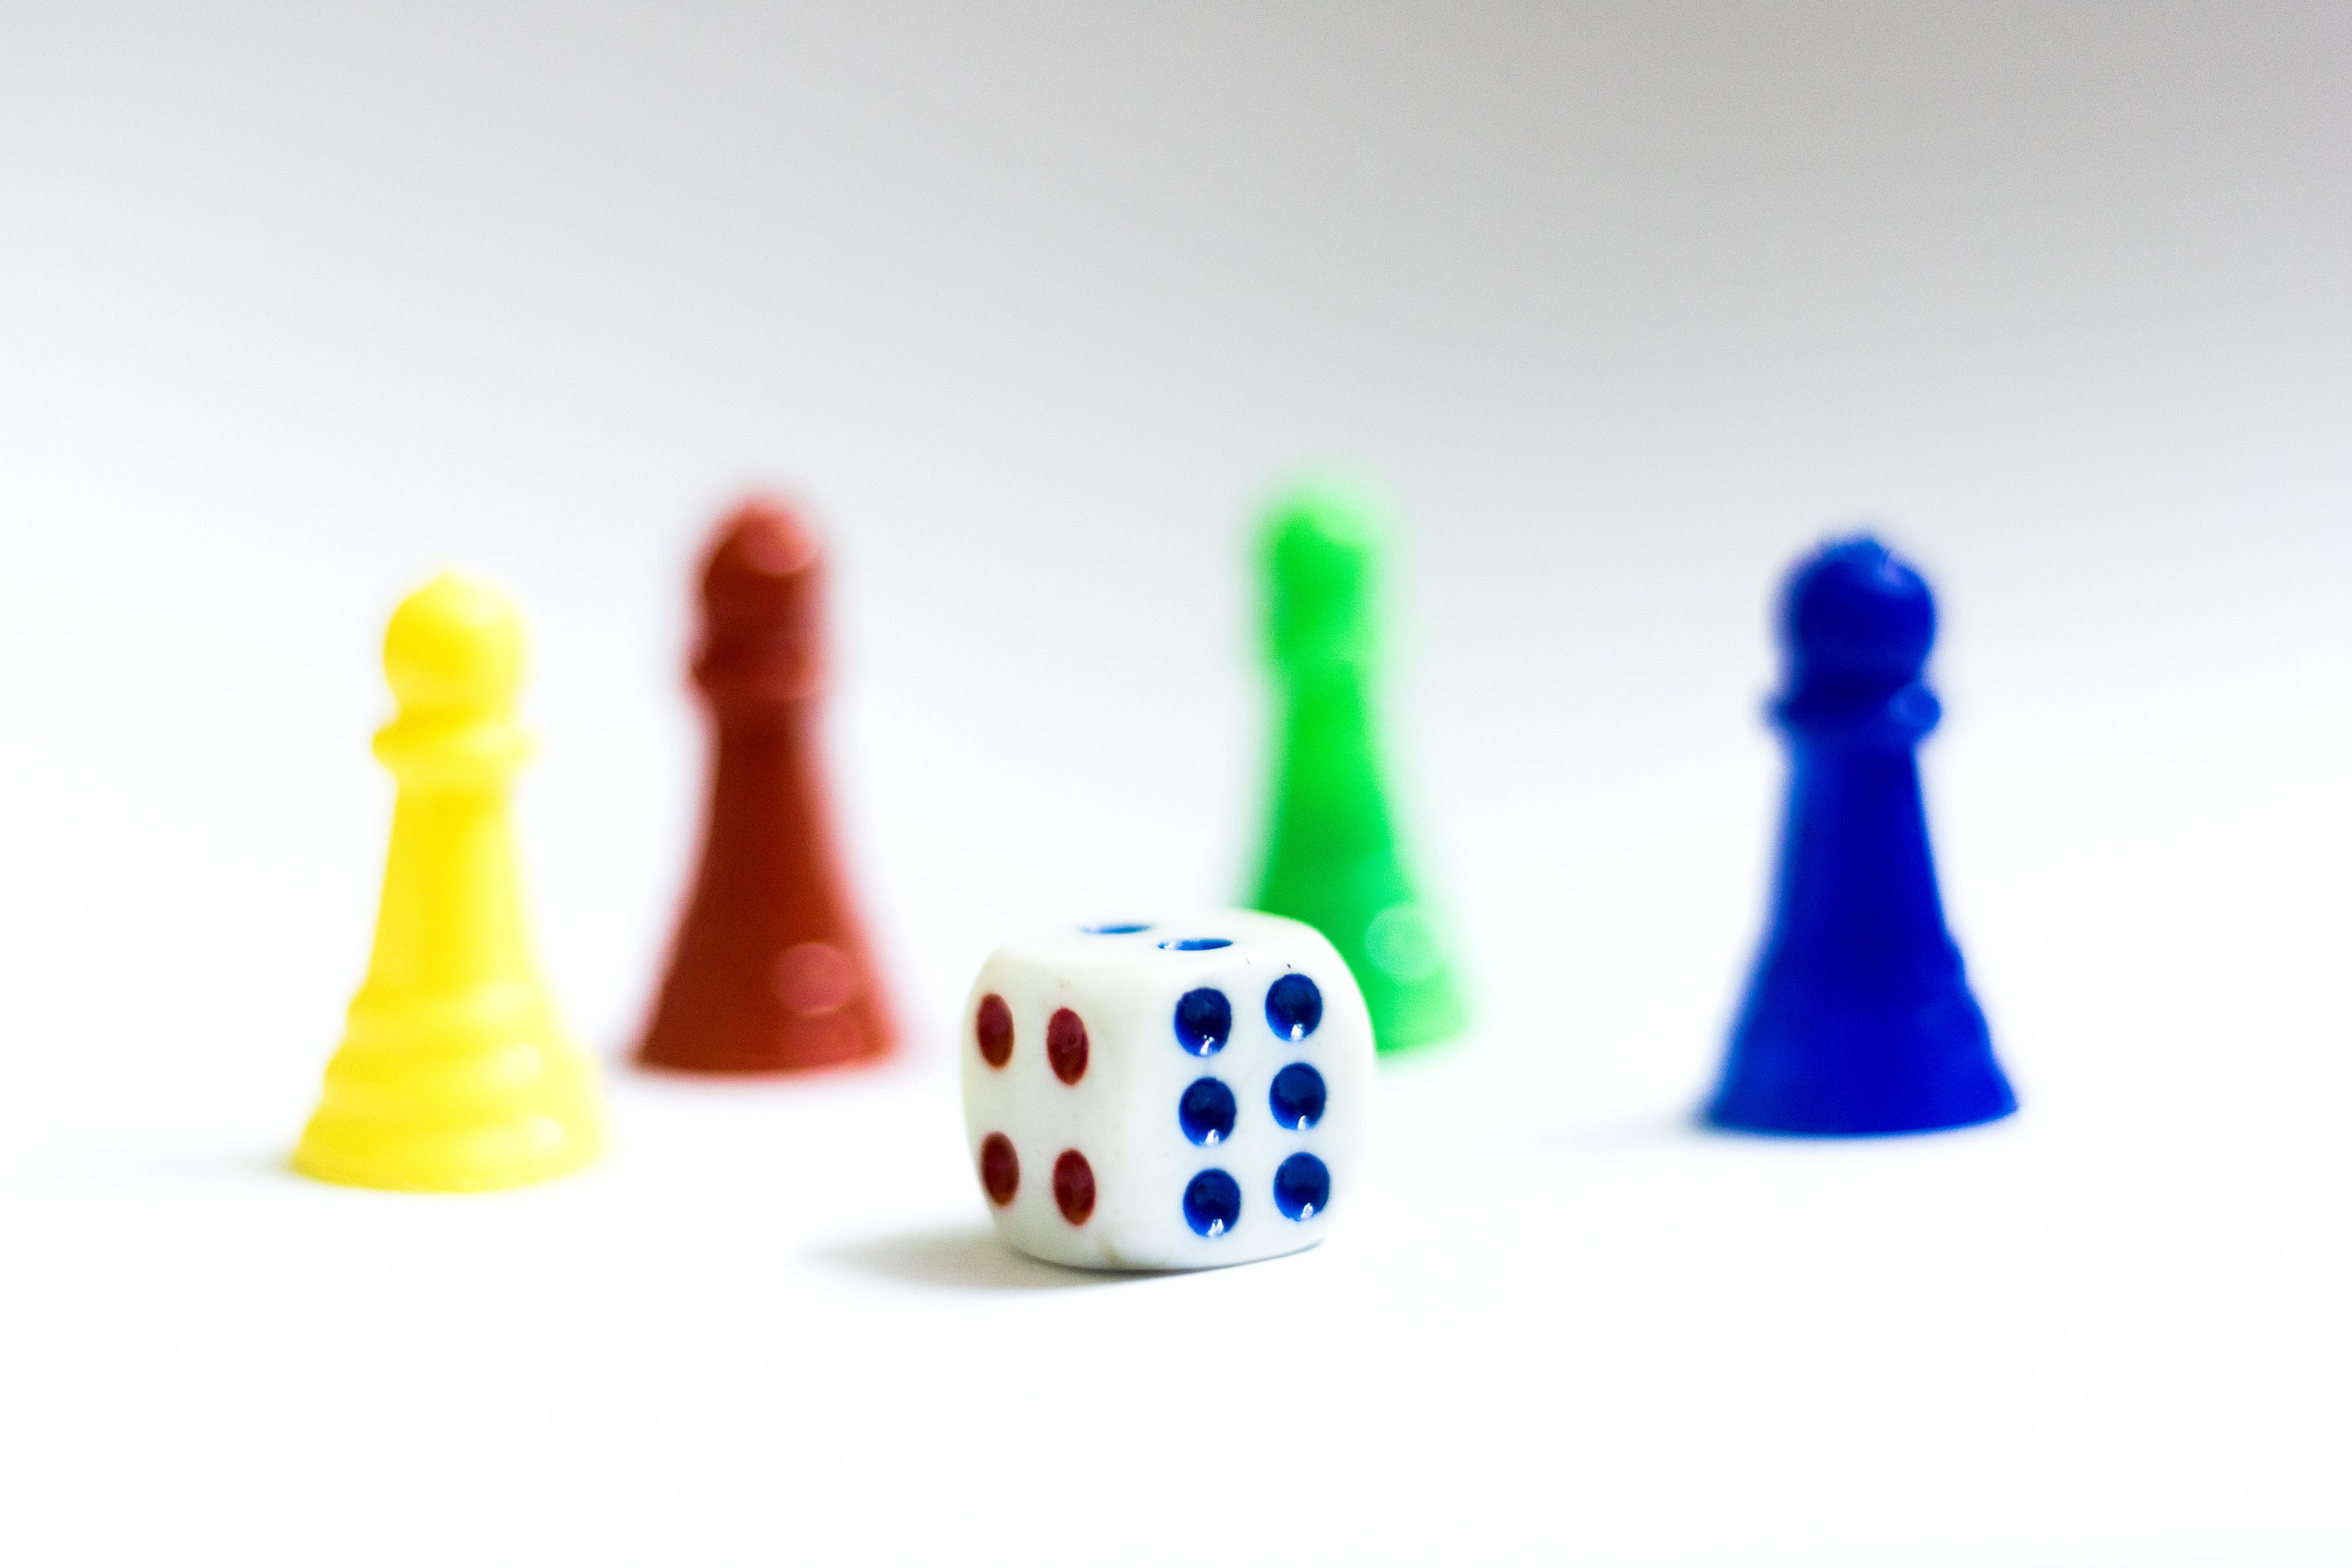 Free stock photo of blur, board game, close-up, colorful